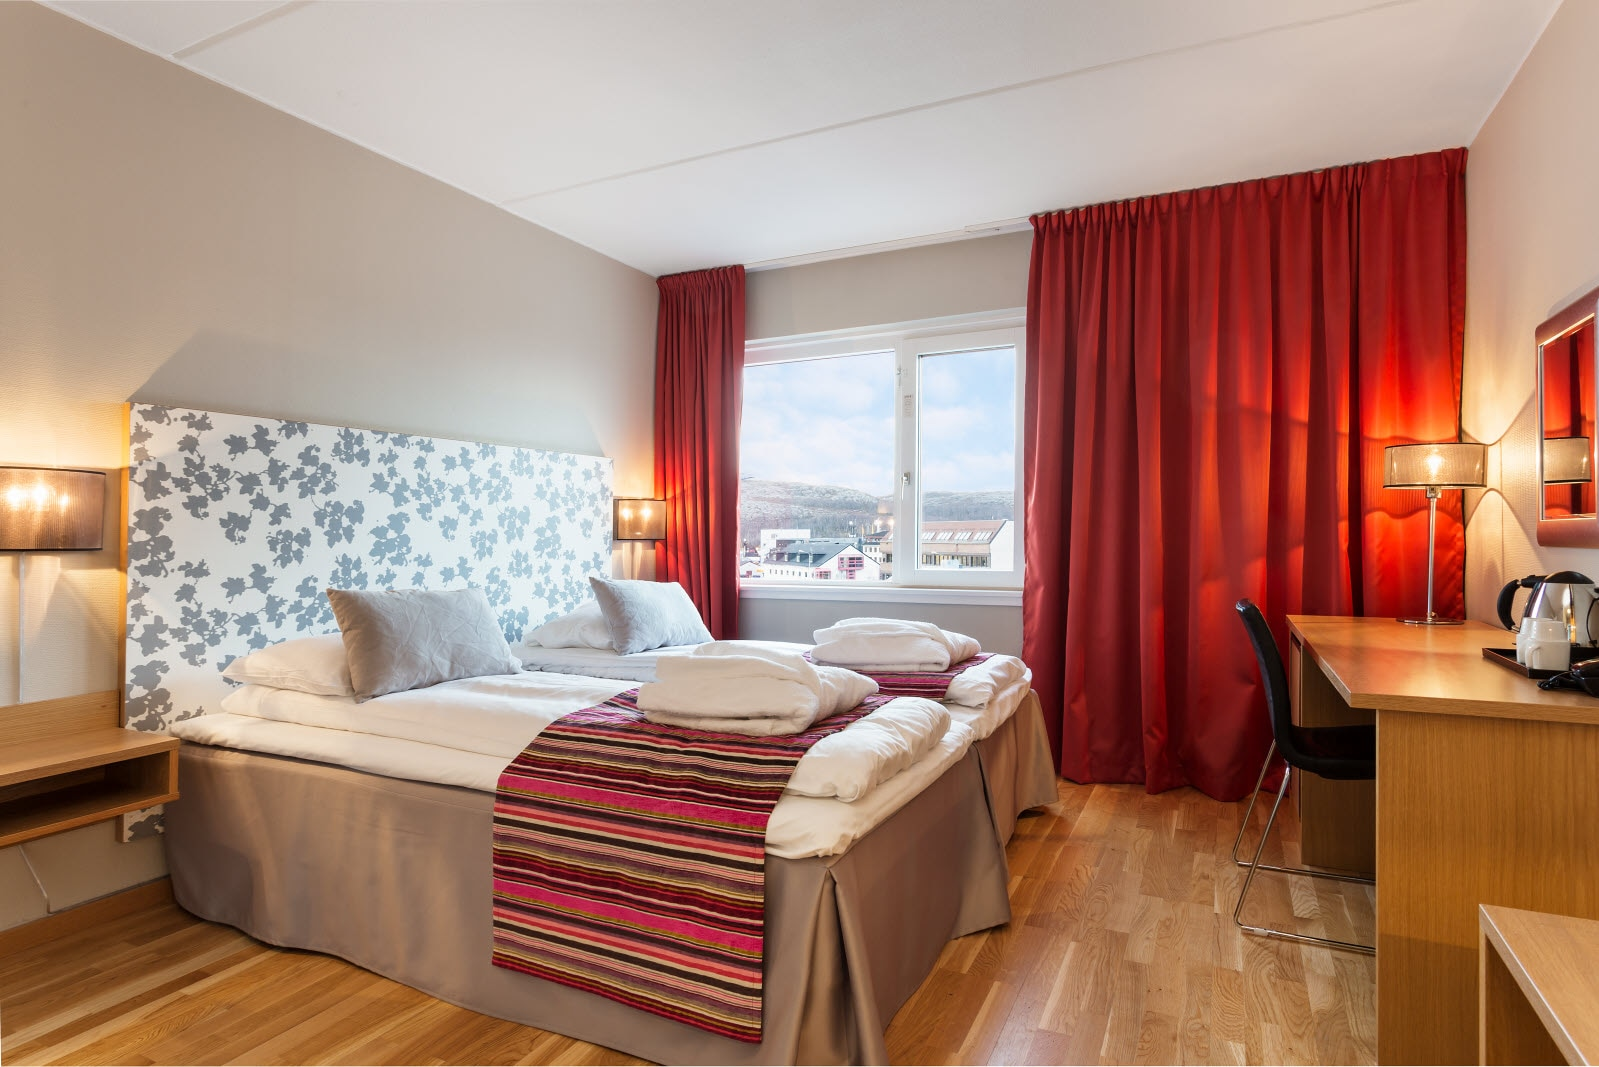 Dobbeltseng i Junior Suite, Scandic Kirkenes